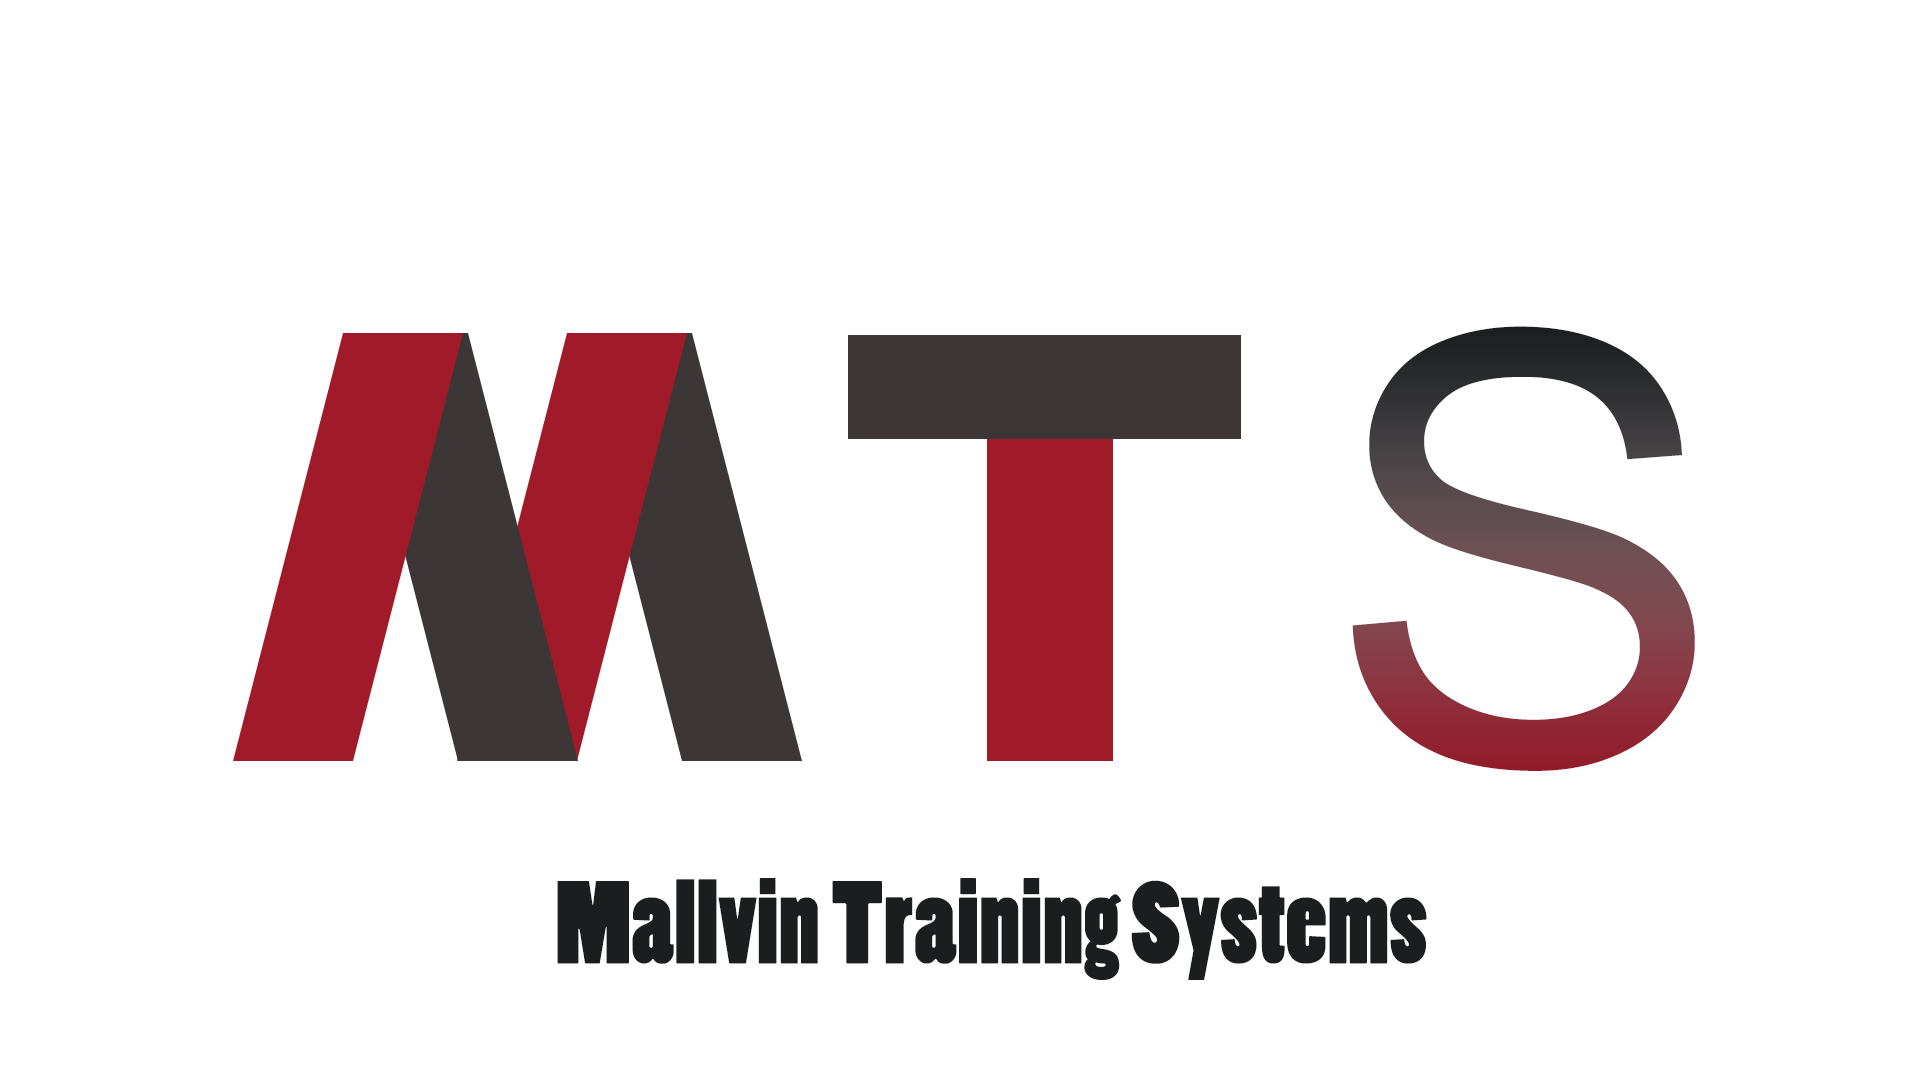 Mallvin Training Systems logo